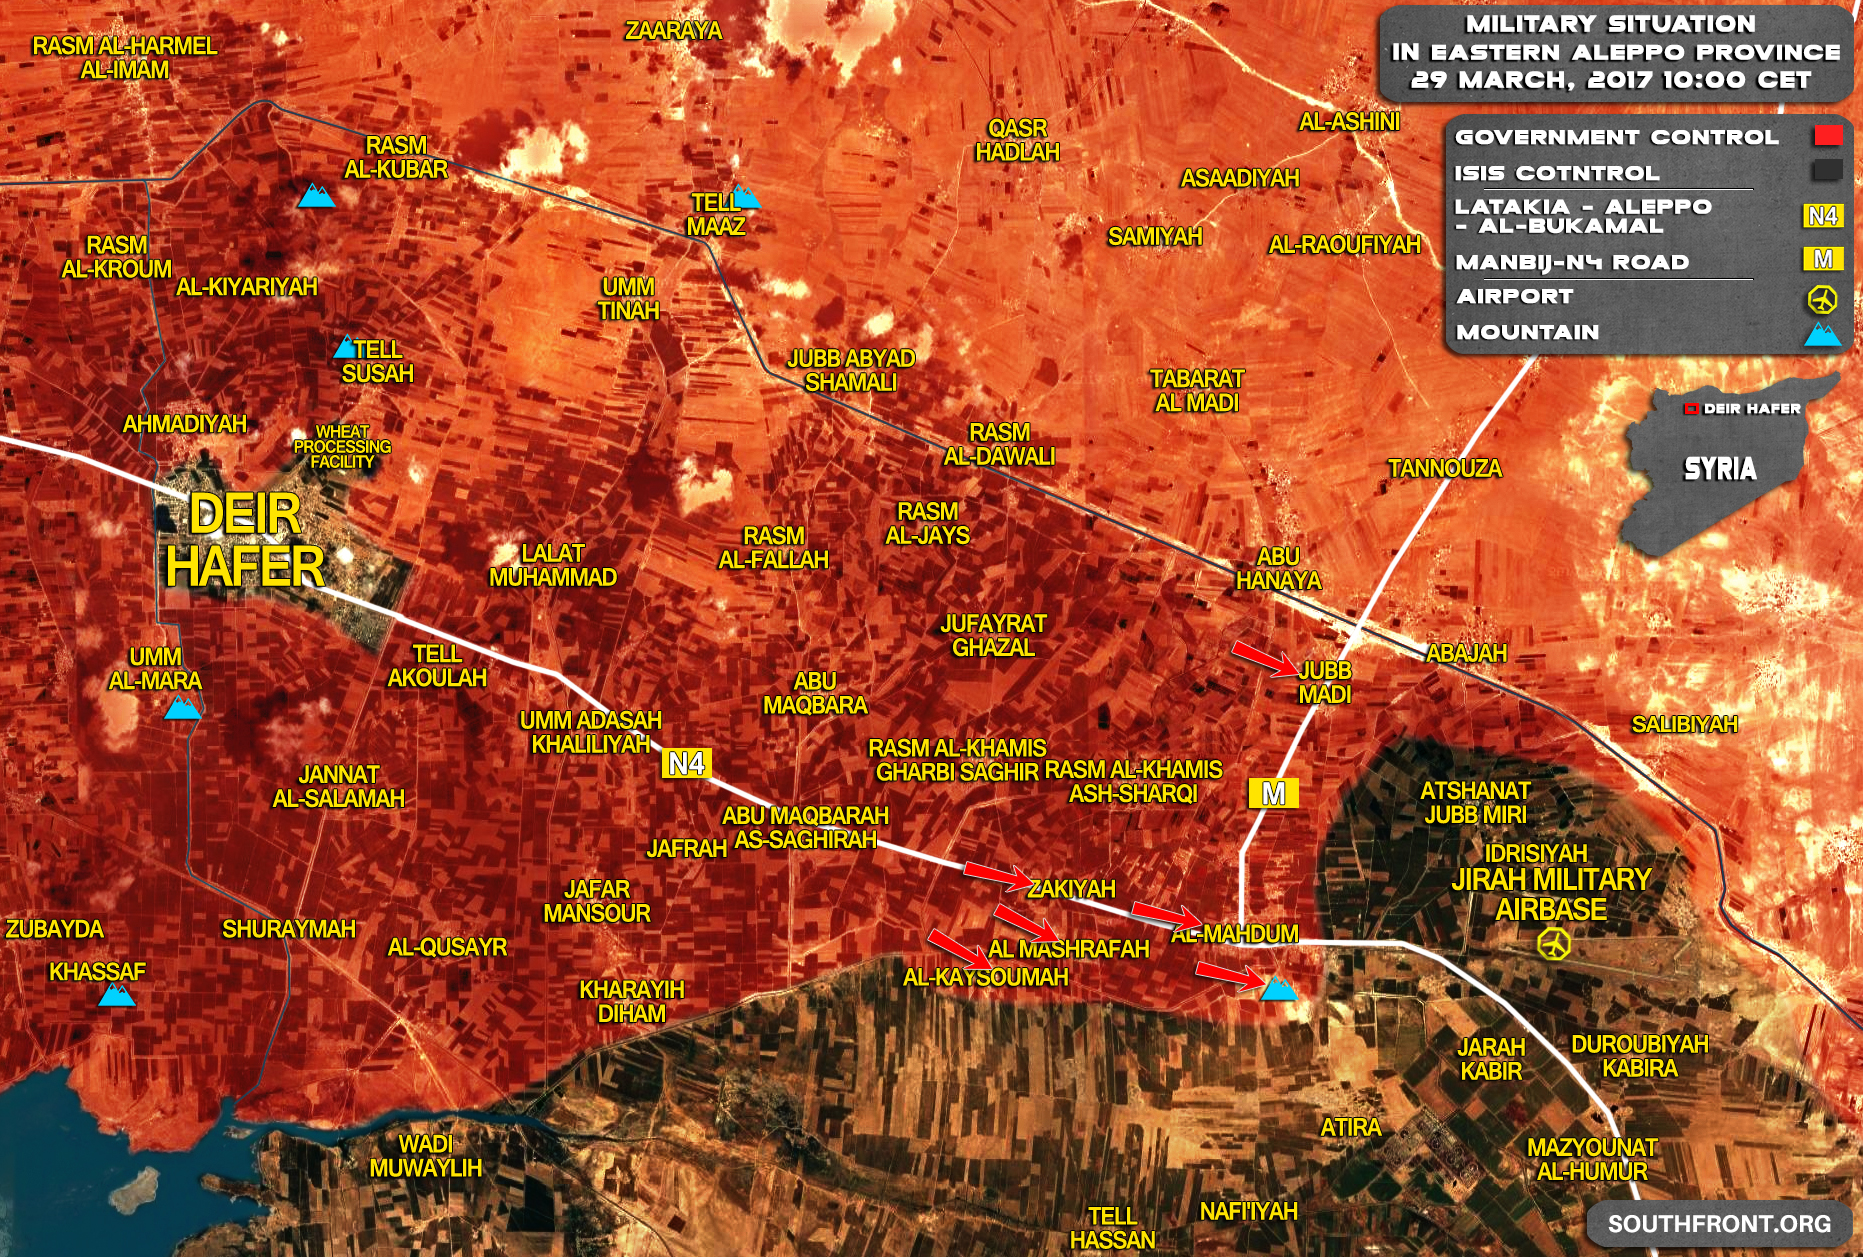 ISIS-Held Jirah Military Air Base In Aleppo To Be Encircled By Syrian Army (Map)